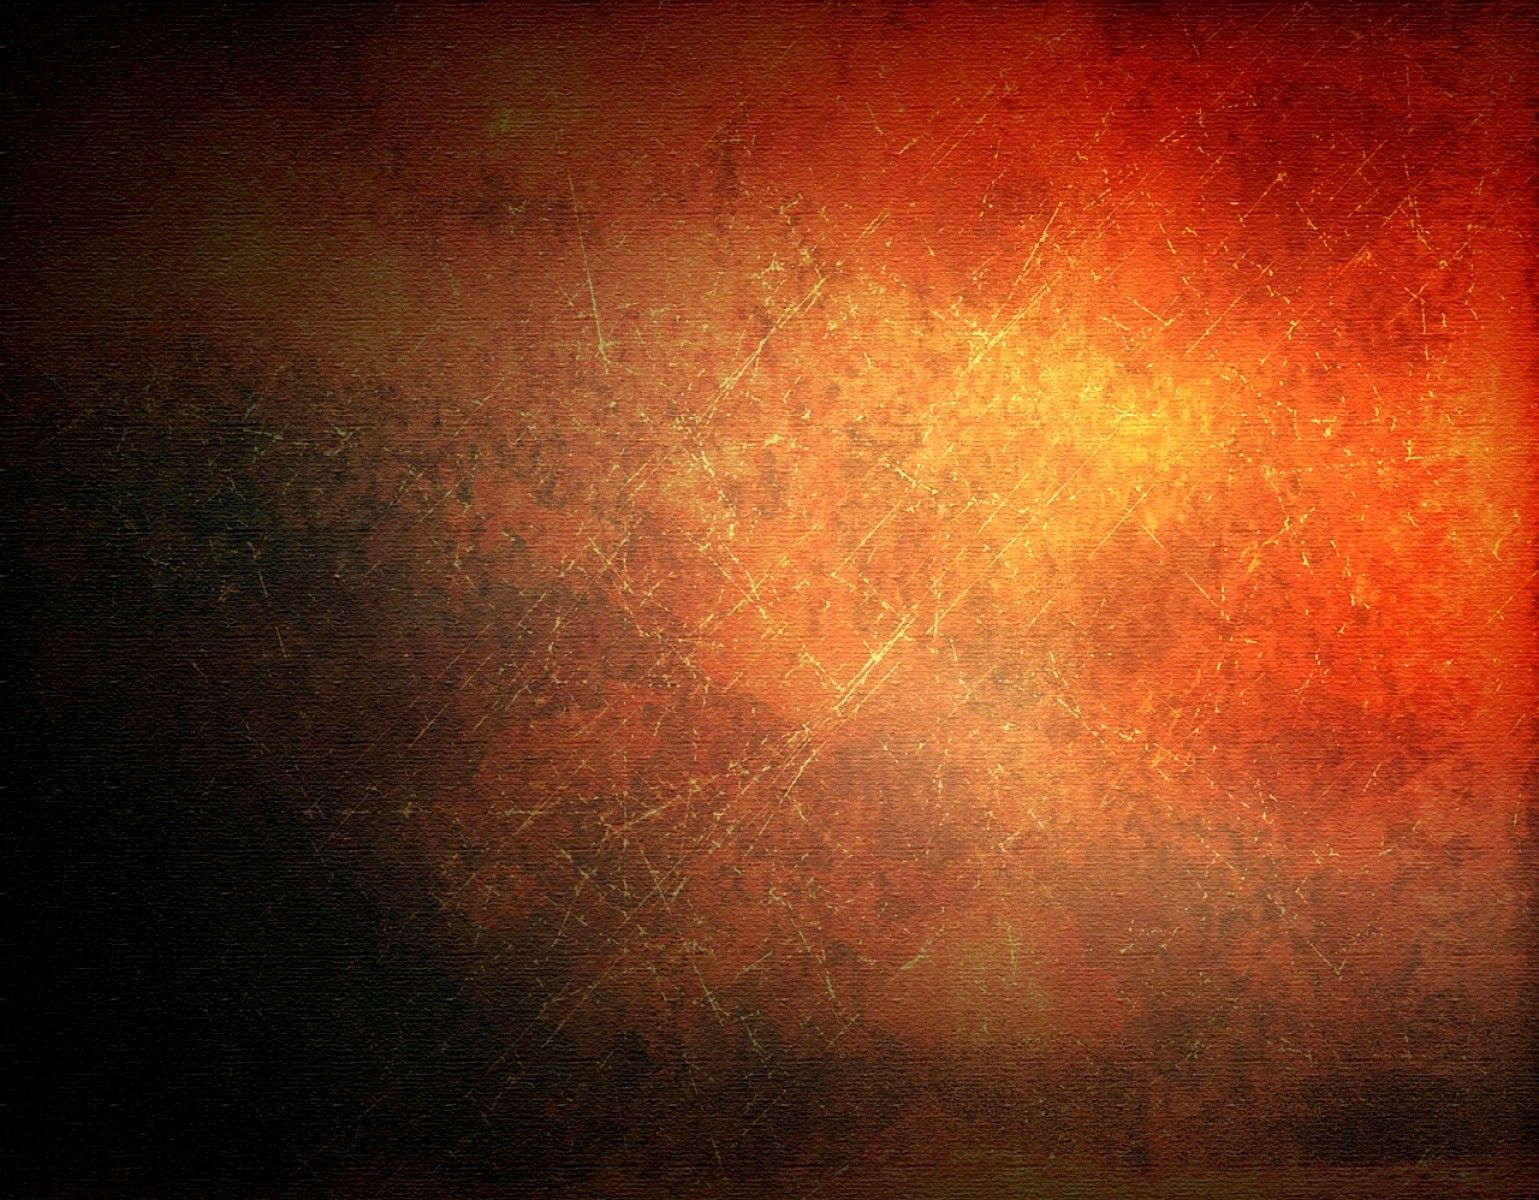 red textured background hd - photo #32